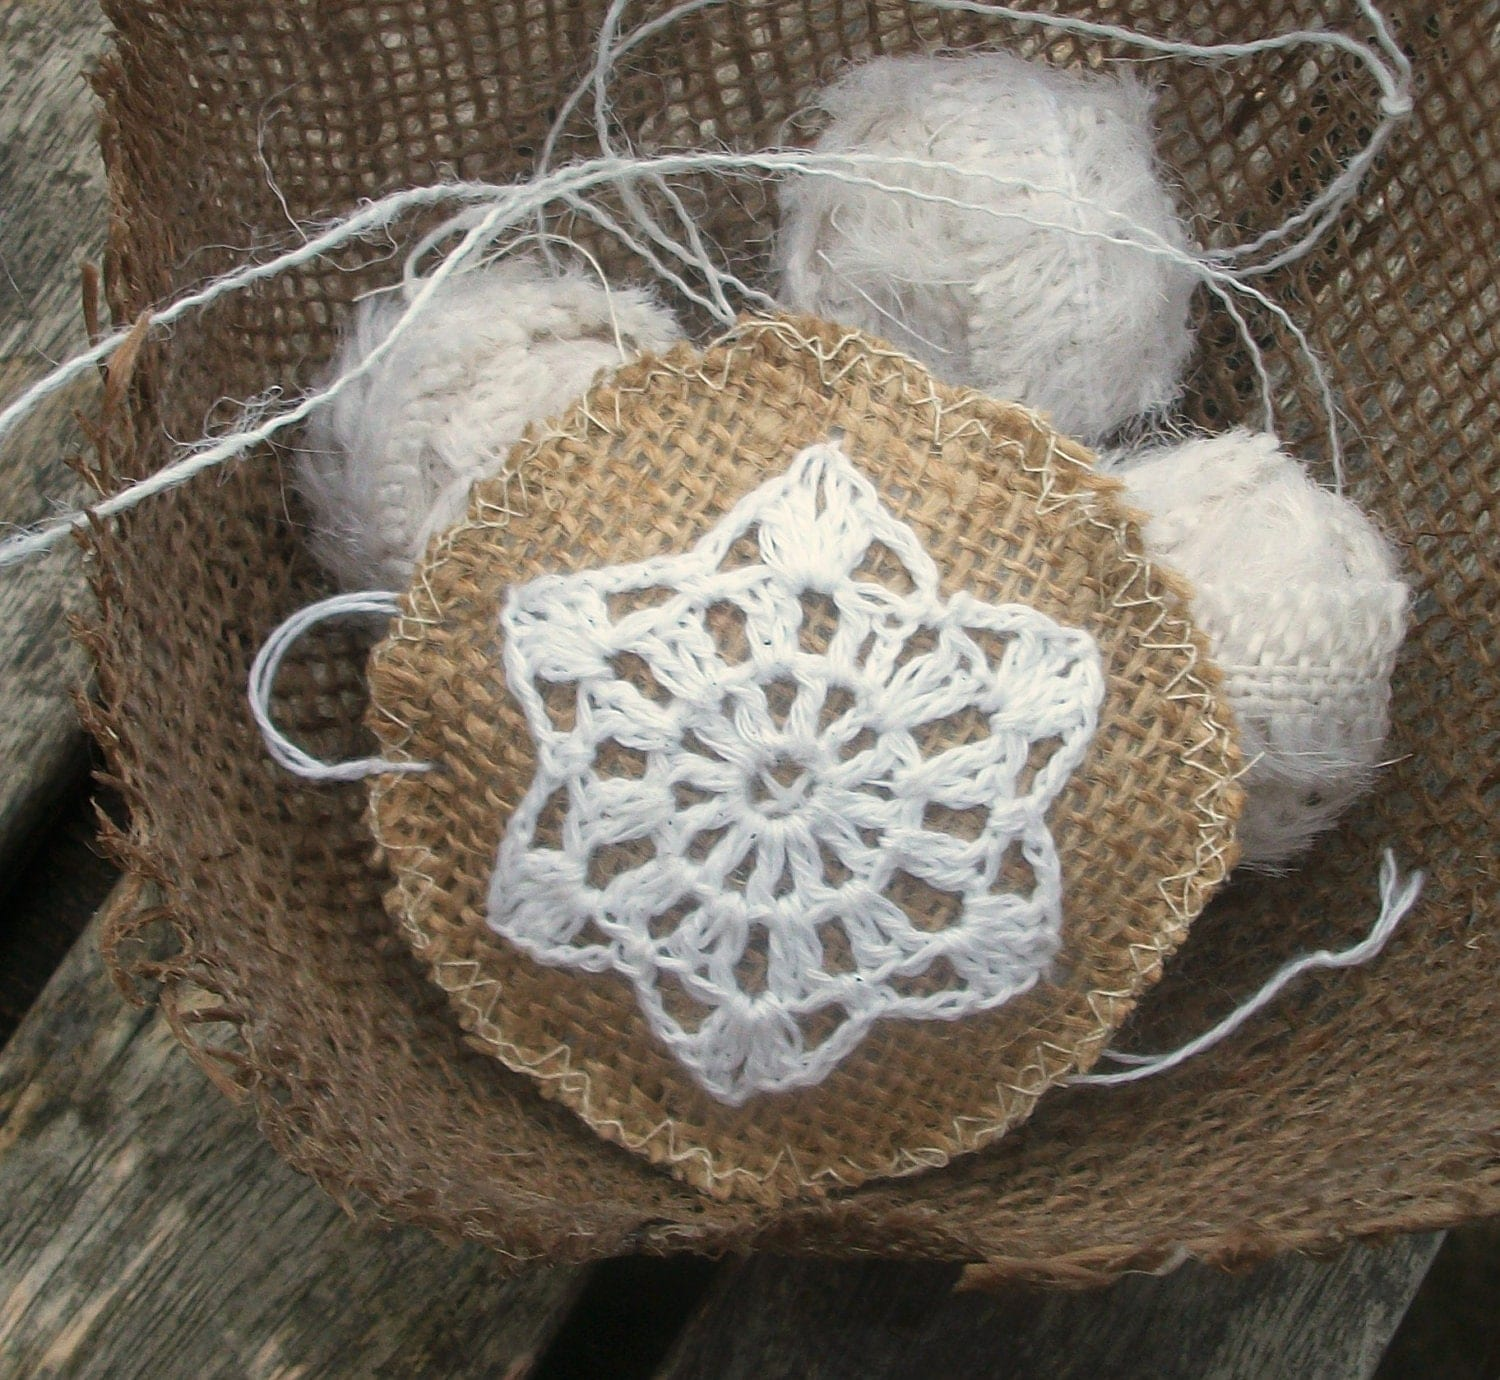 Burlap Tree Ornaments: Christmas Tree Ornament Burlap With Snowflake By HomeDecorLab